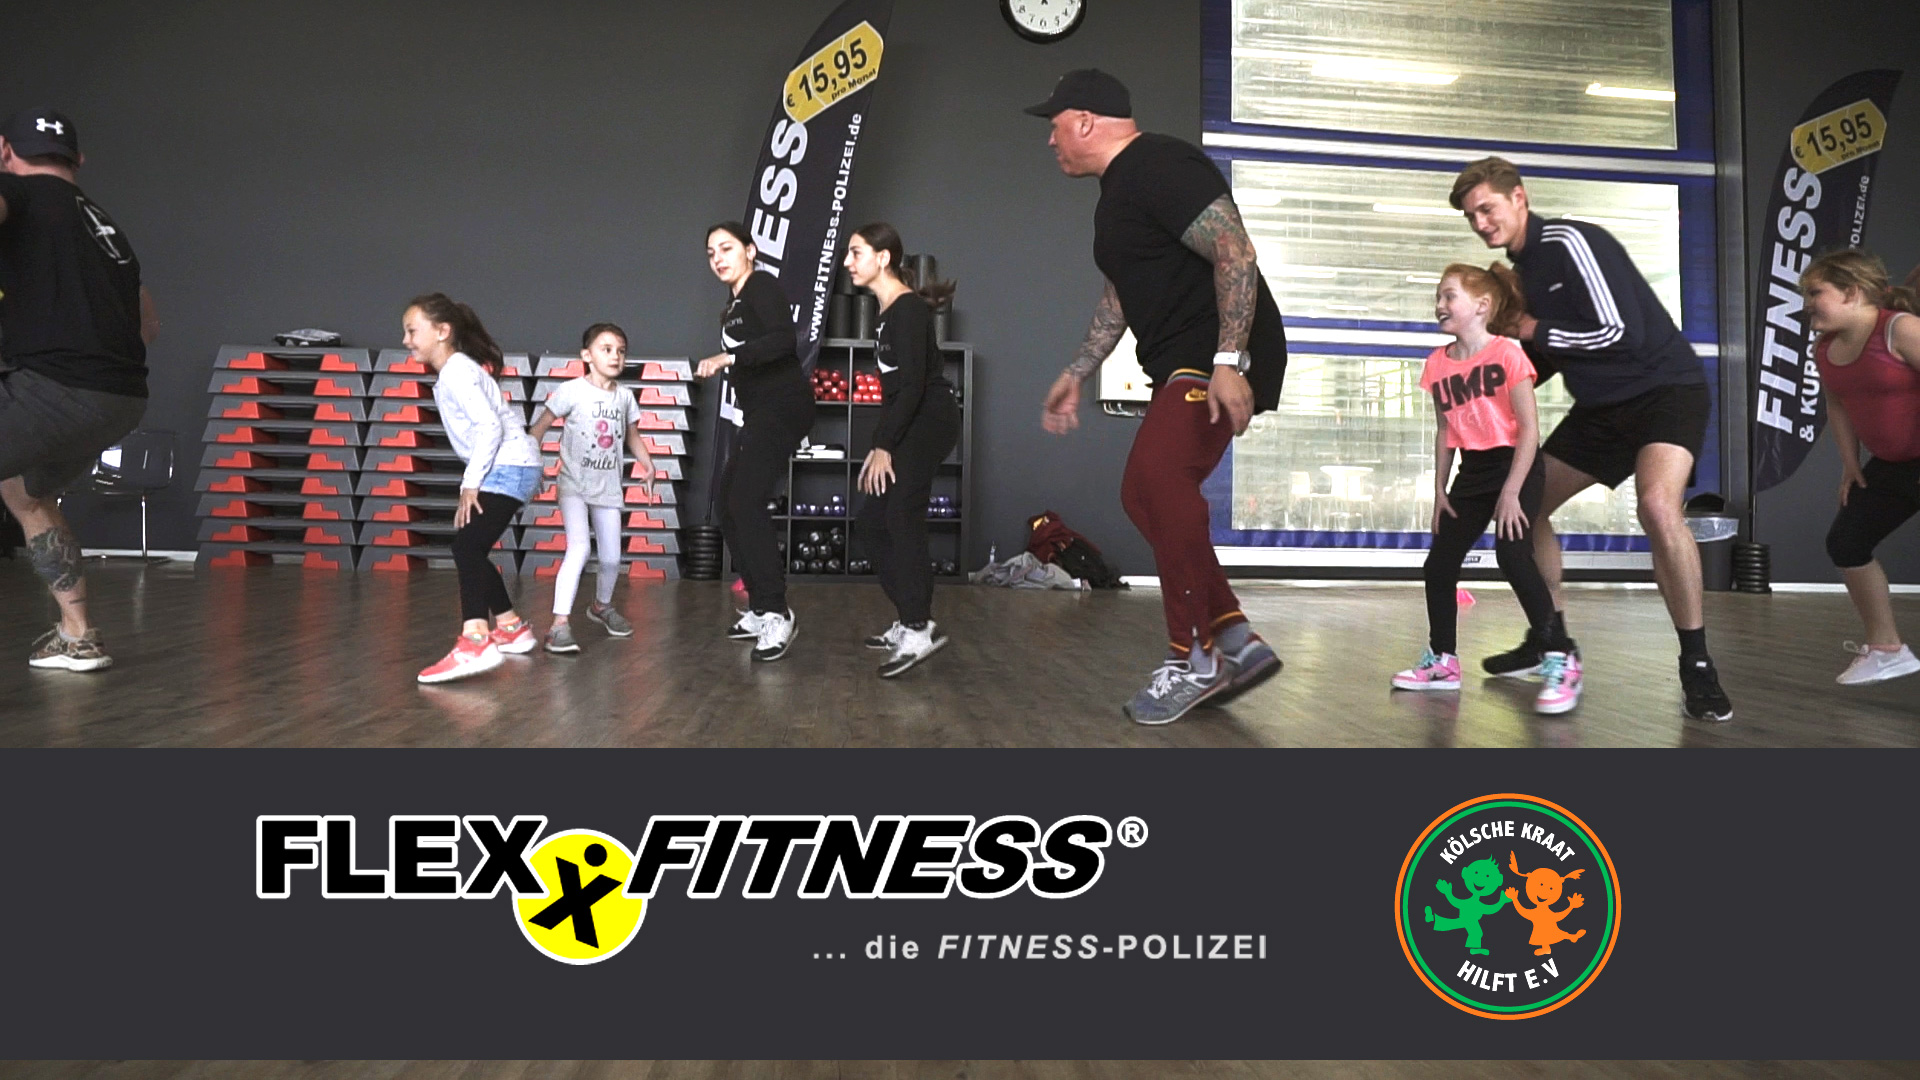 Kinder Fitness und Koch-Event bei FLEXX FITNESS